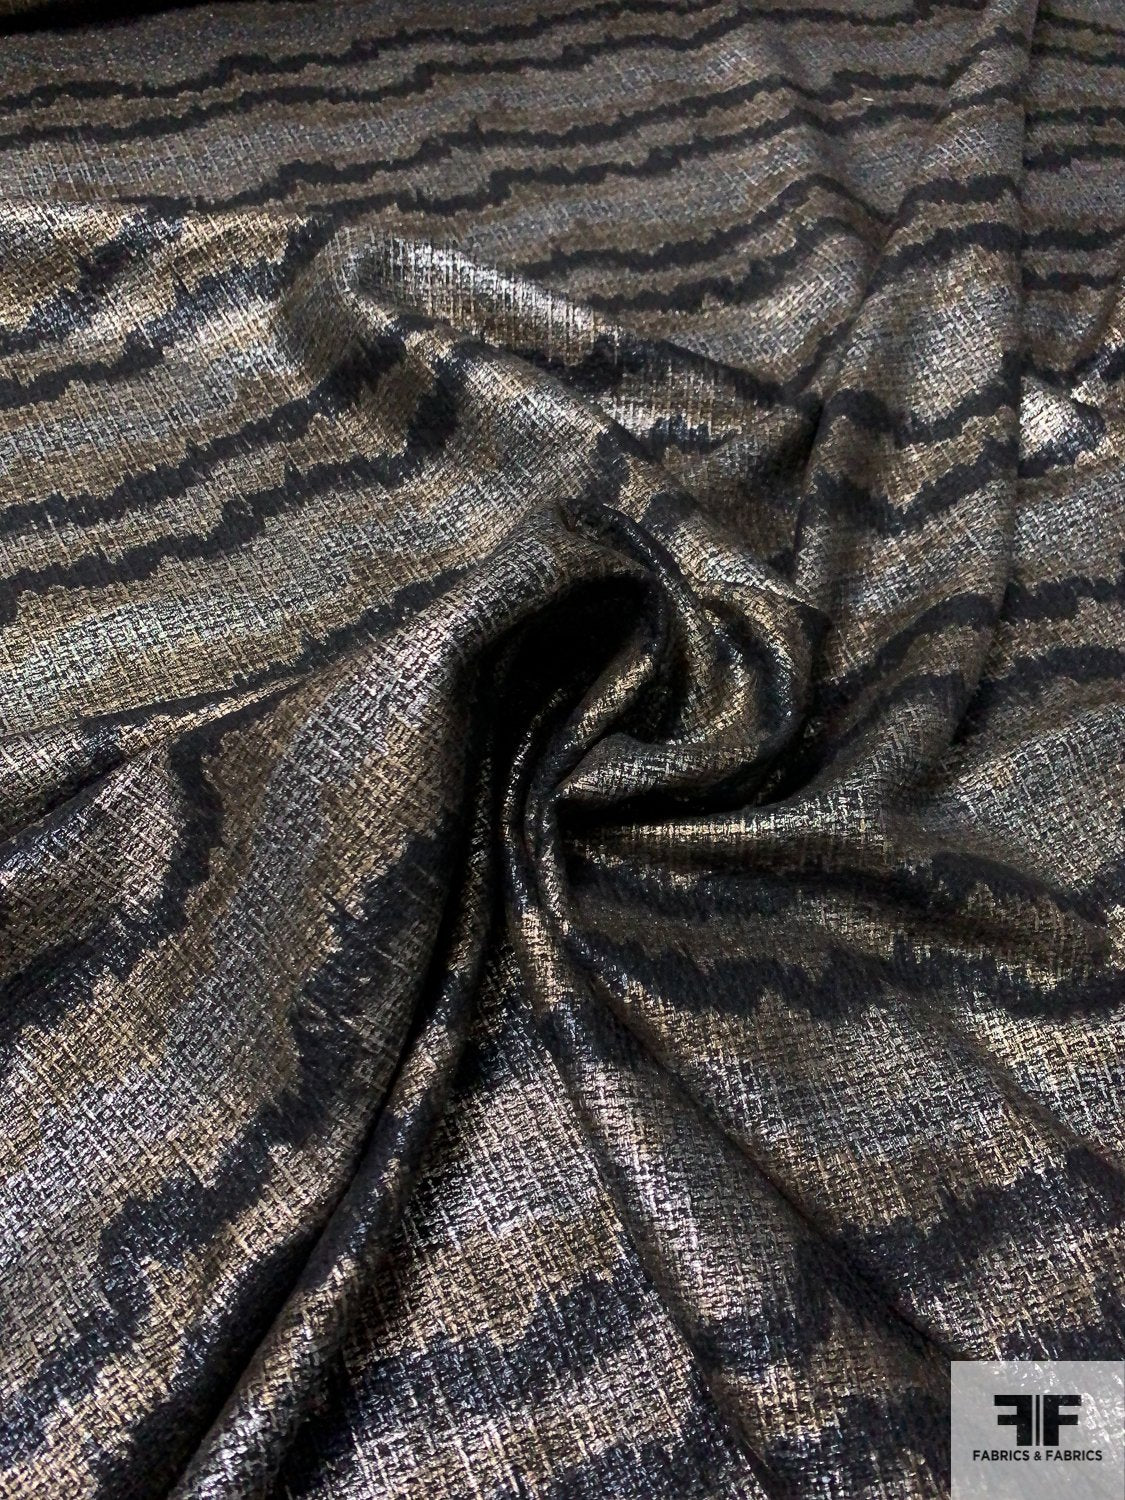 Italian Wavy Striped Foil Printed Tweed - Black / Antique Gold-Silver